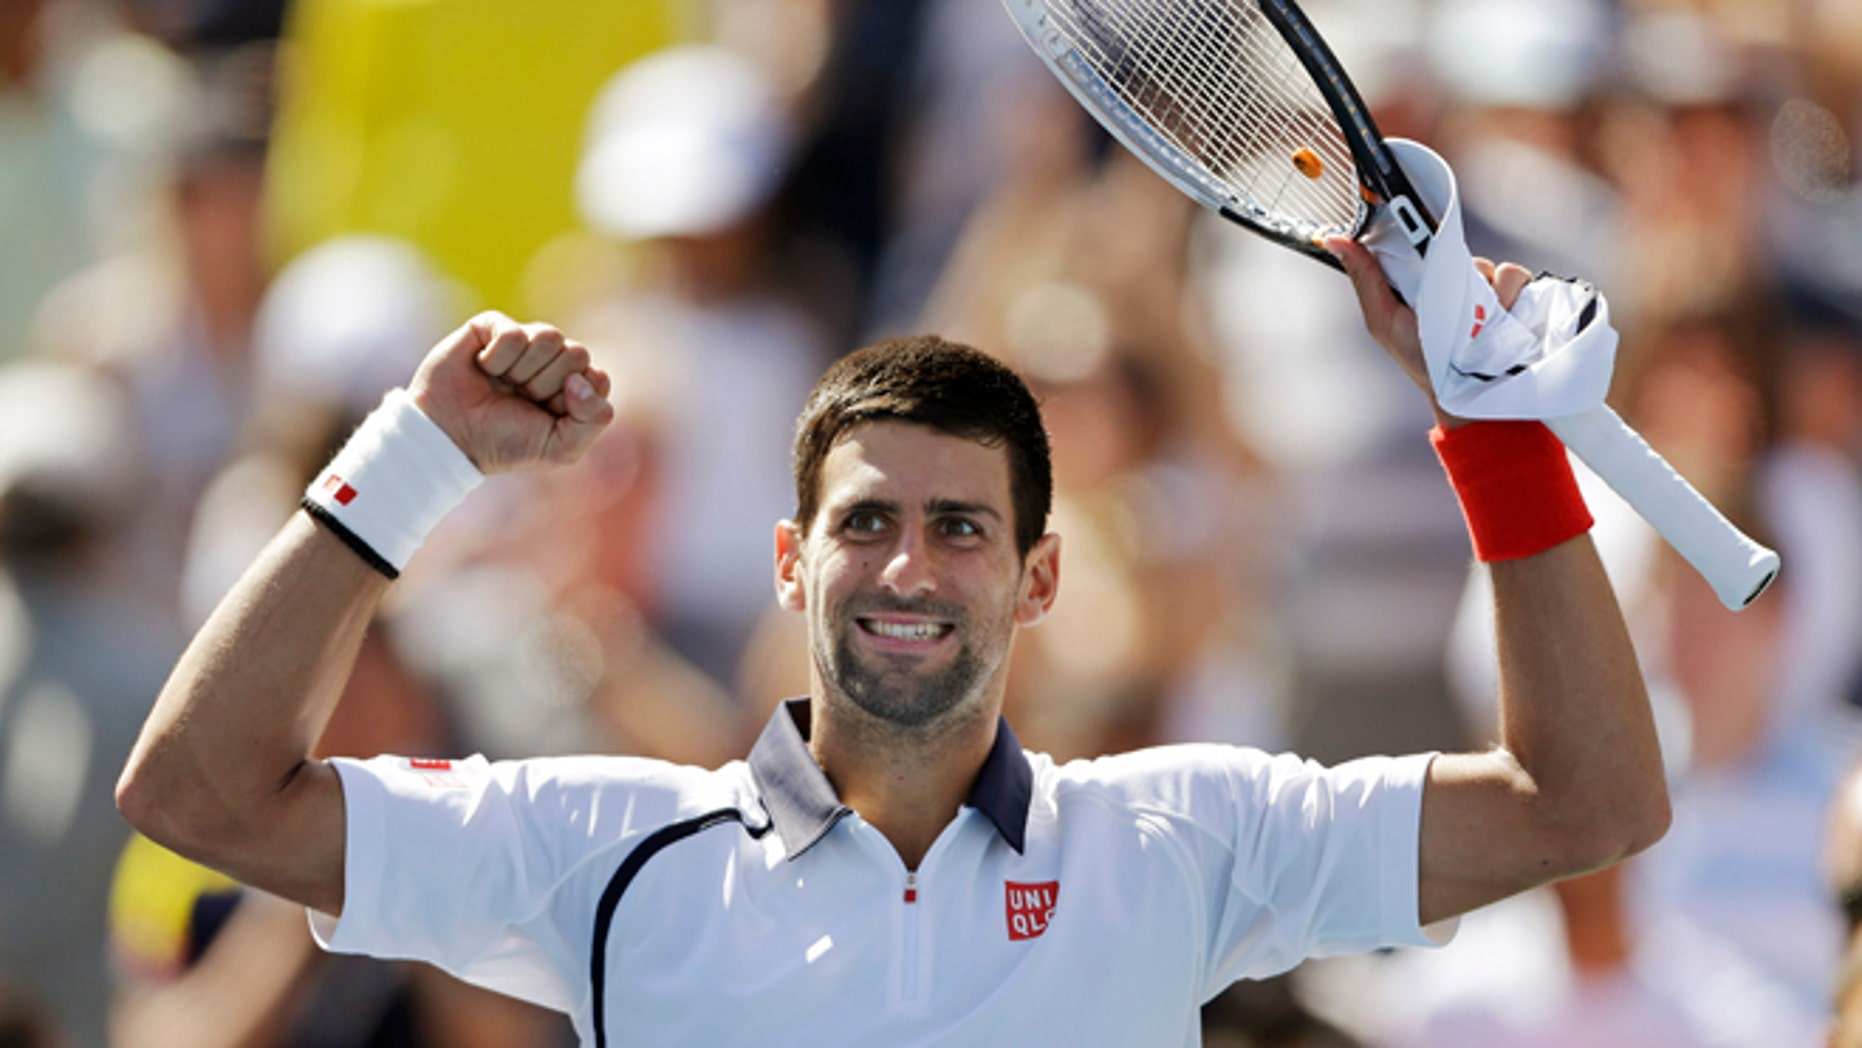 September 9, 2012: Novak Djokovic of Serbia reacts after beating Spain's David Ferrer during a semifinal match at the 2012 US Open tennis tournament in New York.